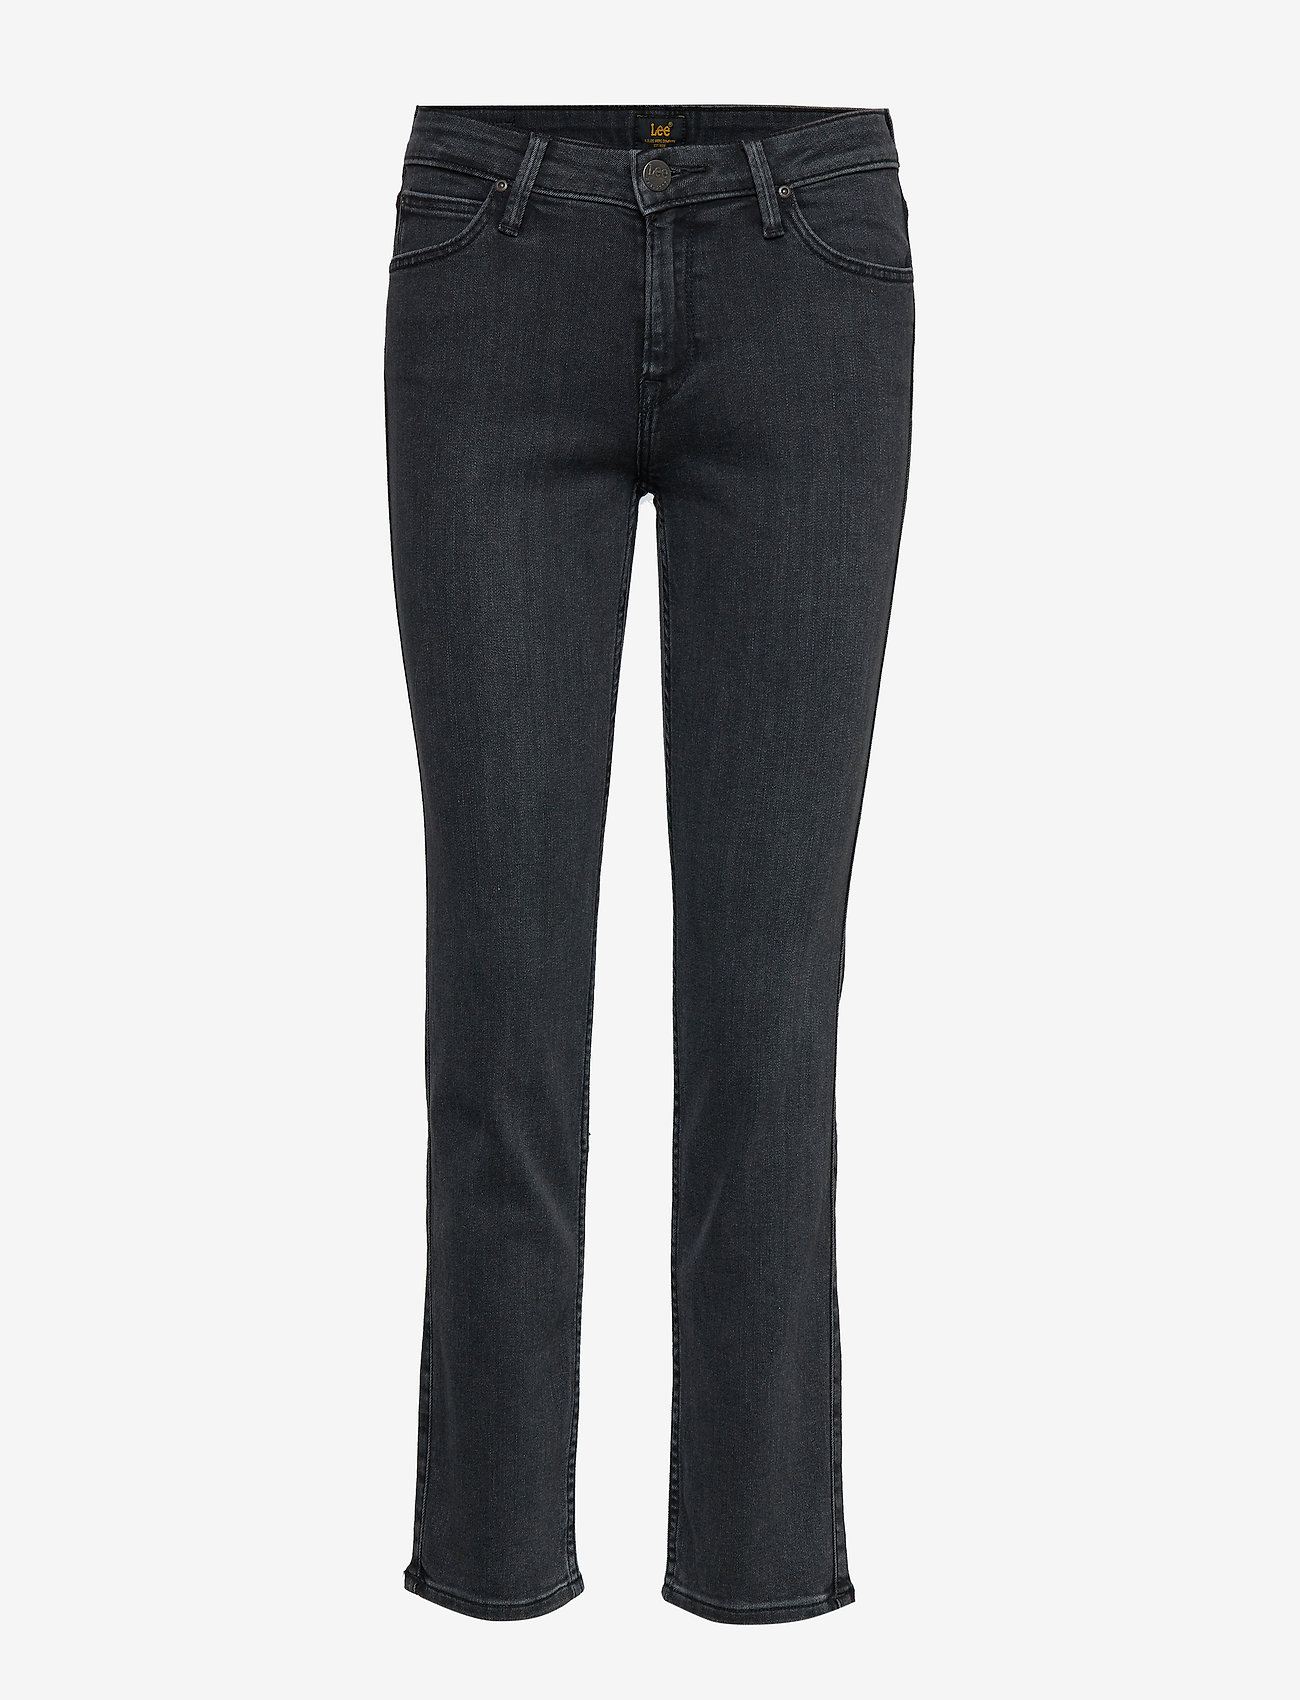 Lee Jeans - ELLY - straight jeans - pitch